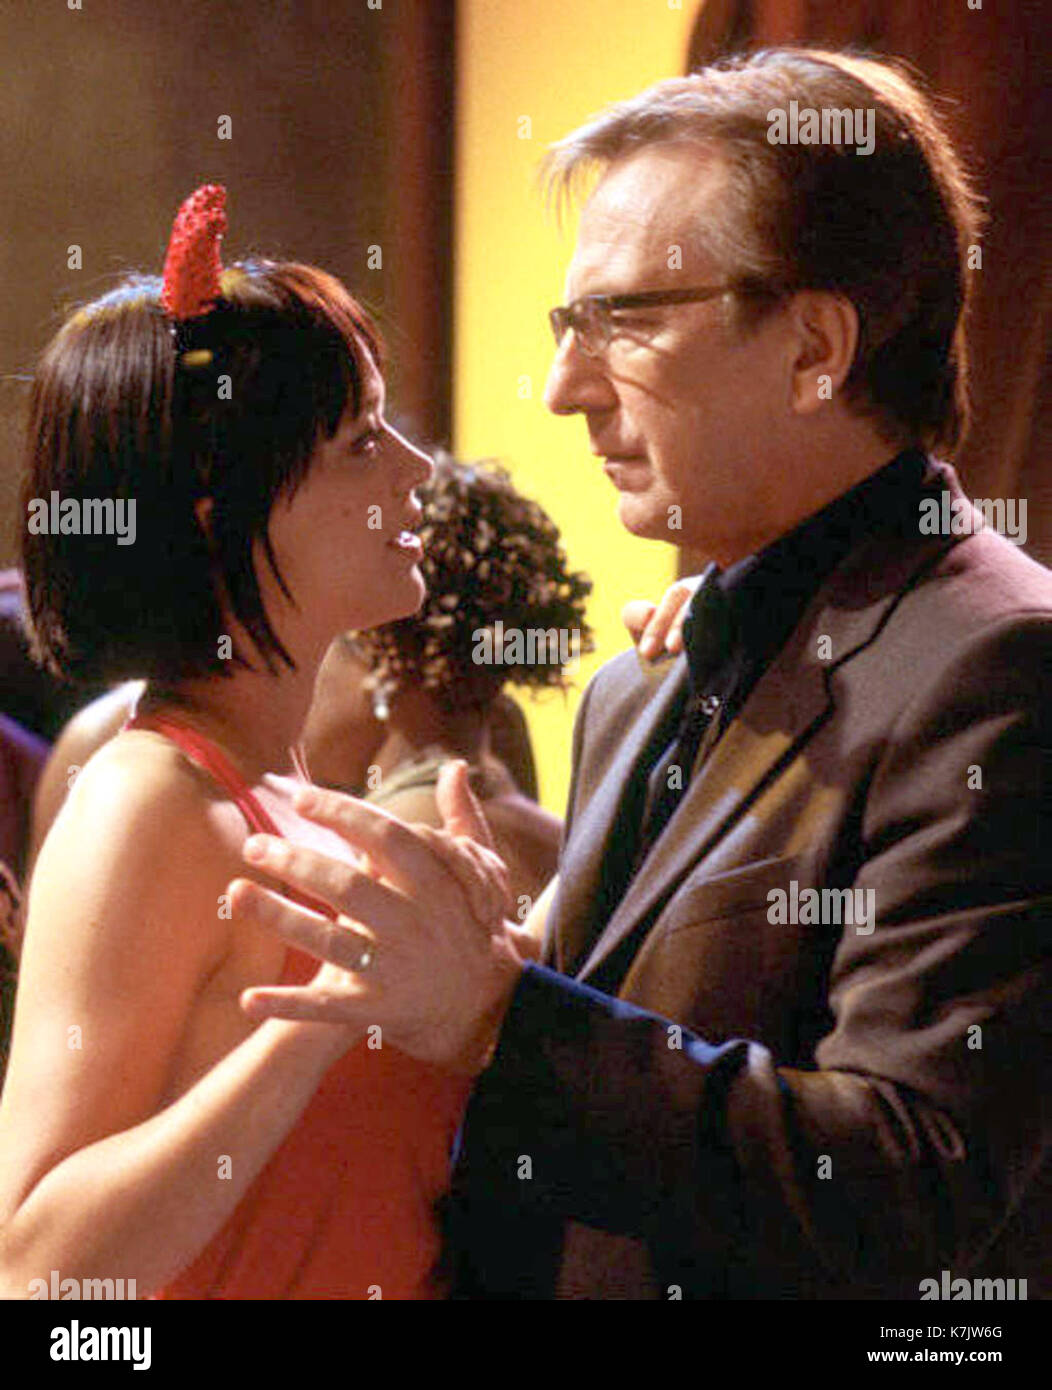 Photo Must Be Credited ©Supplied by Alpha 070000 (2003) Heike Makatsch as Mia and Alan Rickman as Harry in the movie Love Actually. - Stock Image